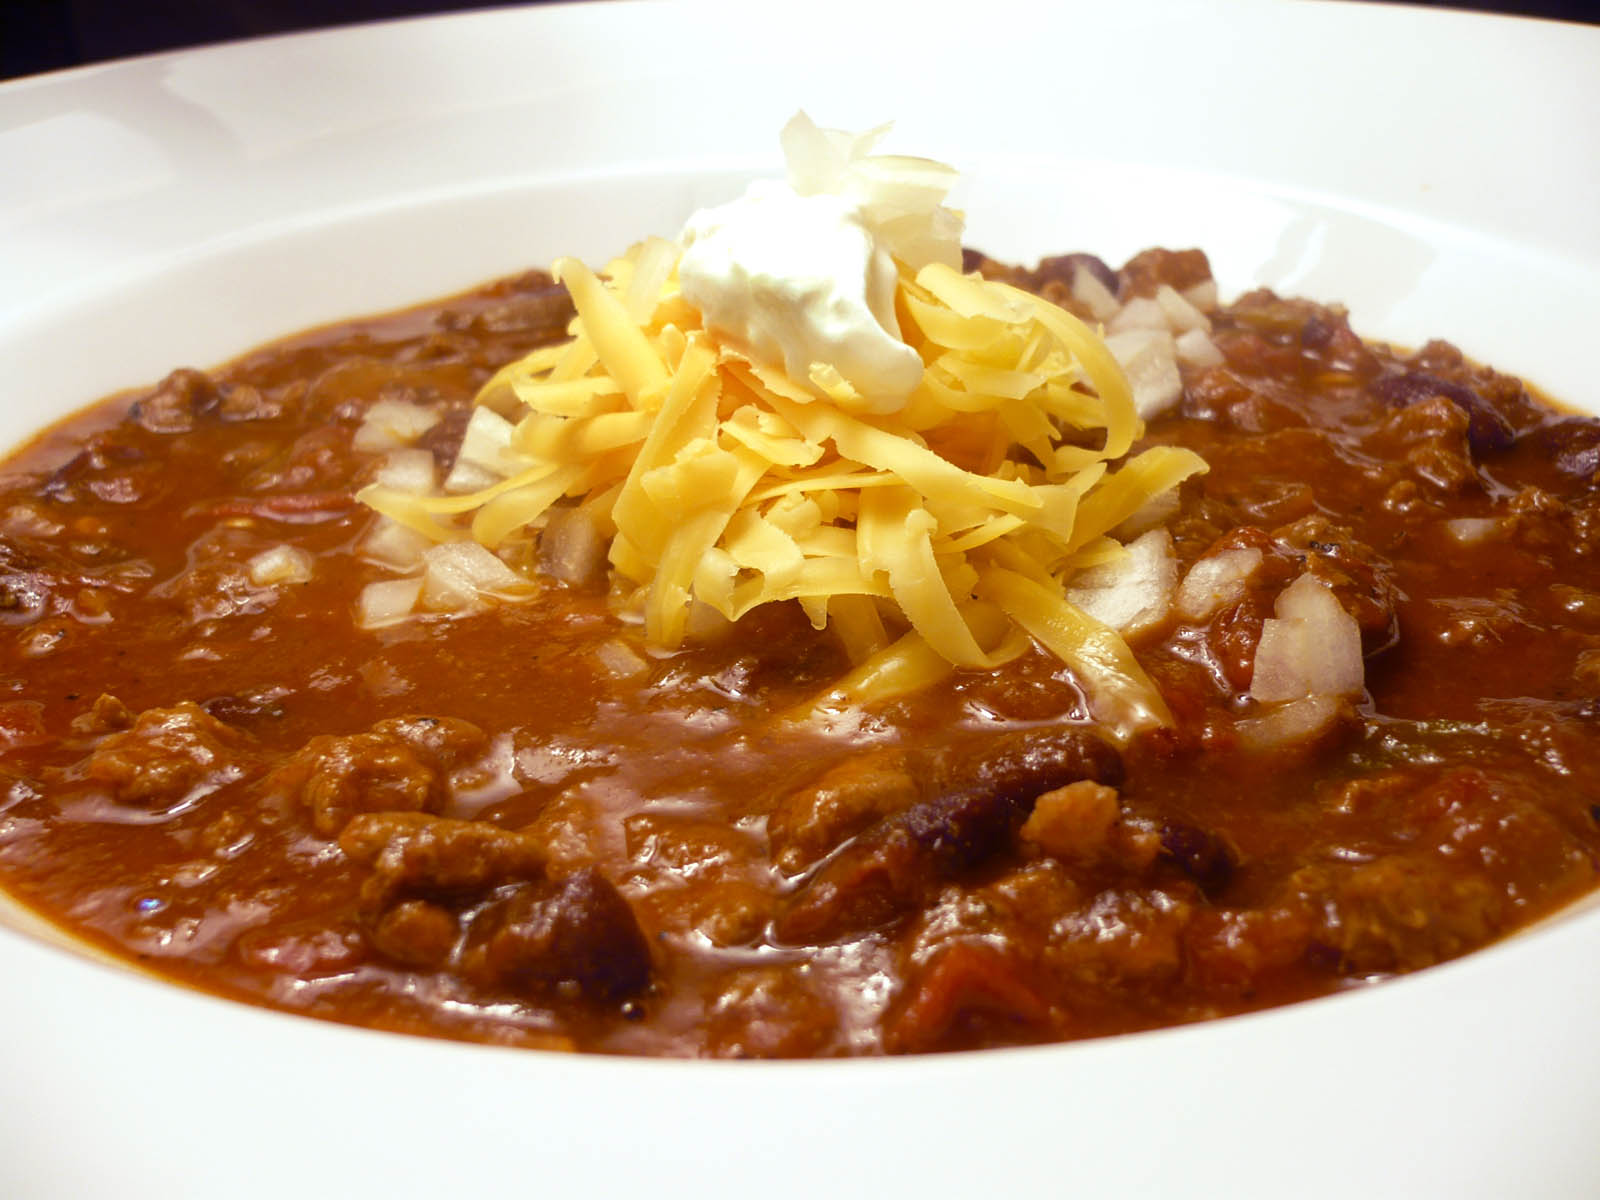 Dave's game-day chili